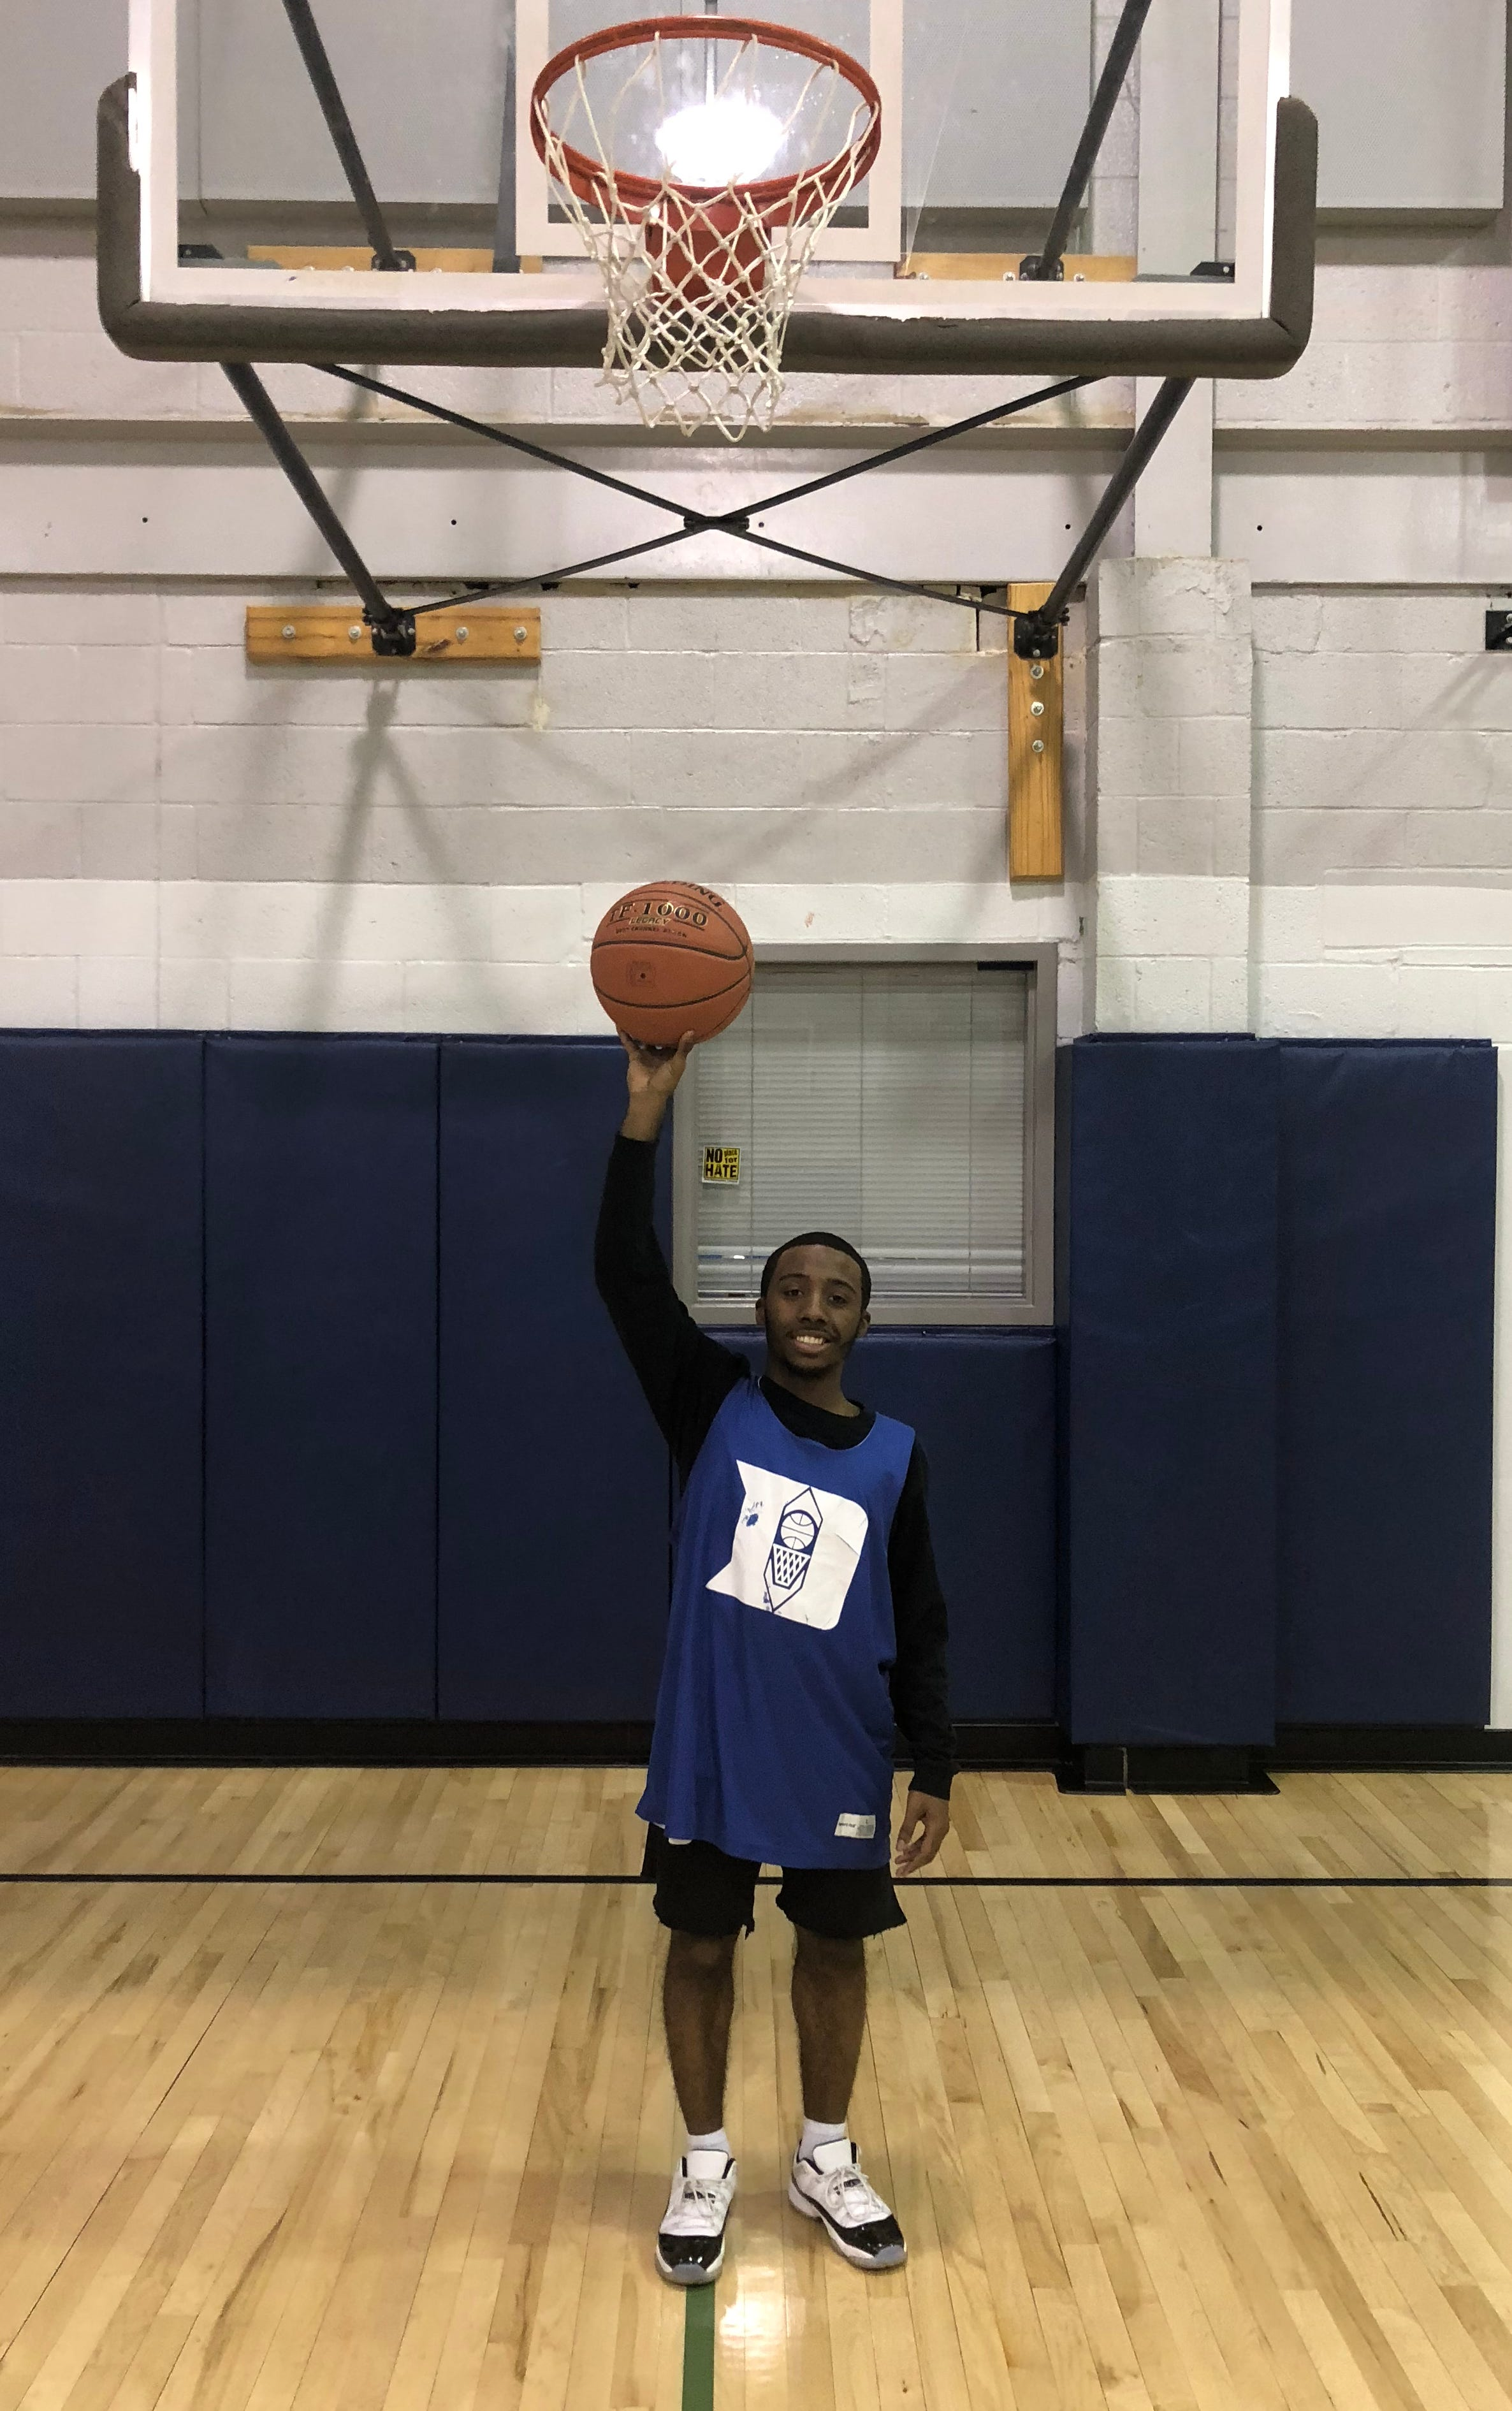 DaJon Simpson, a 4-foot, 11-inch guard, is one of the leaders on Dallastown this season. Simpson's coaches say he proves why intangibles matter in the game of basketball.